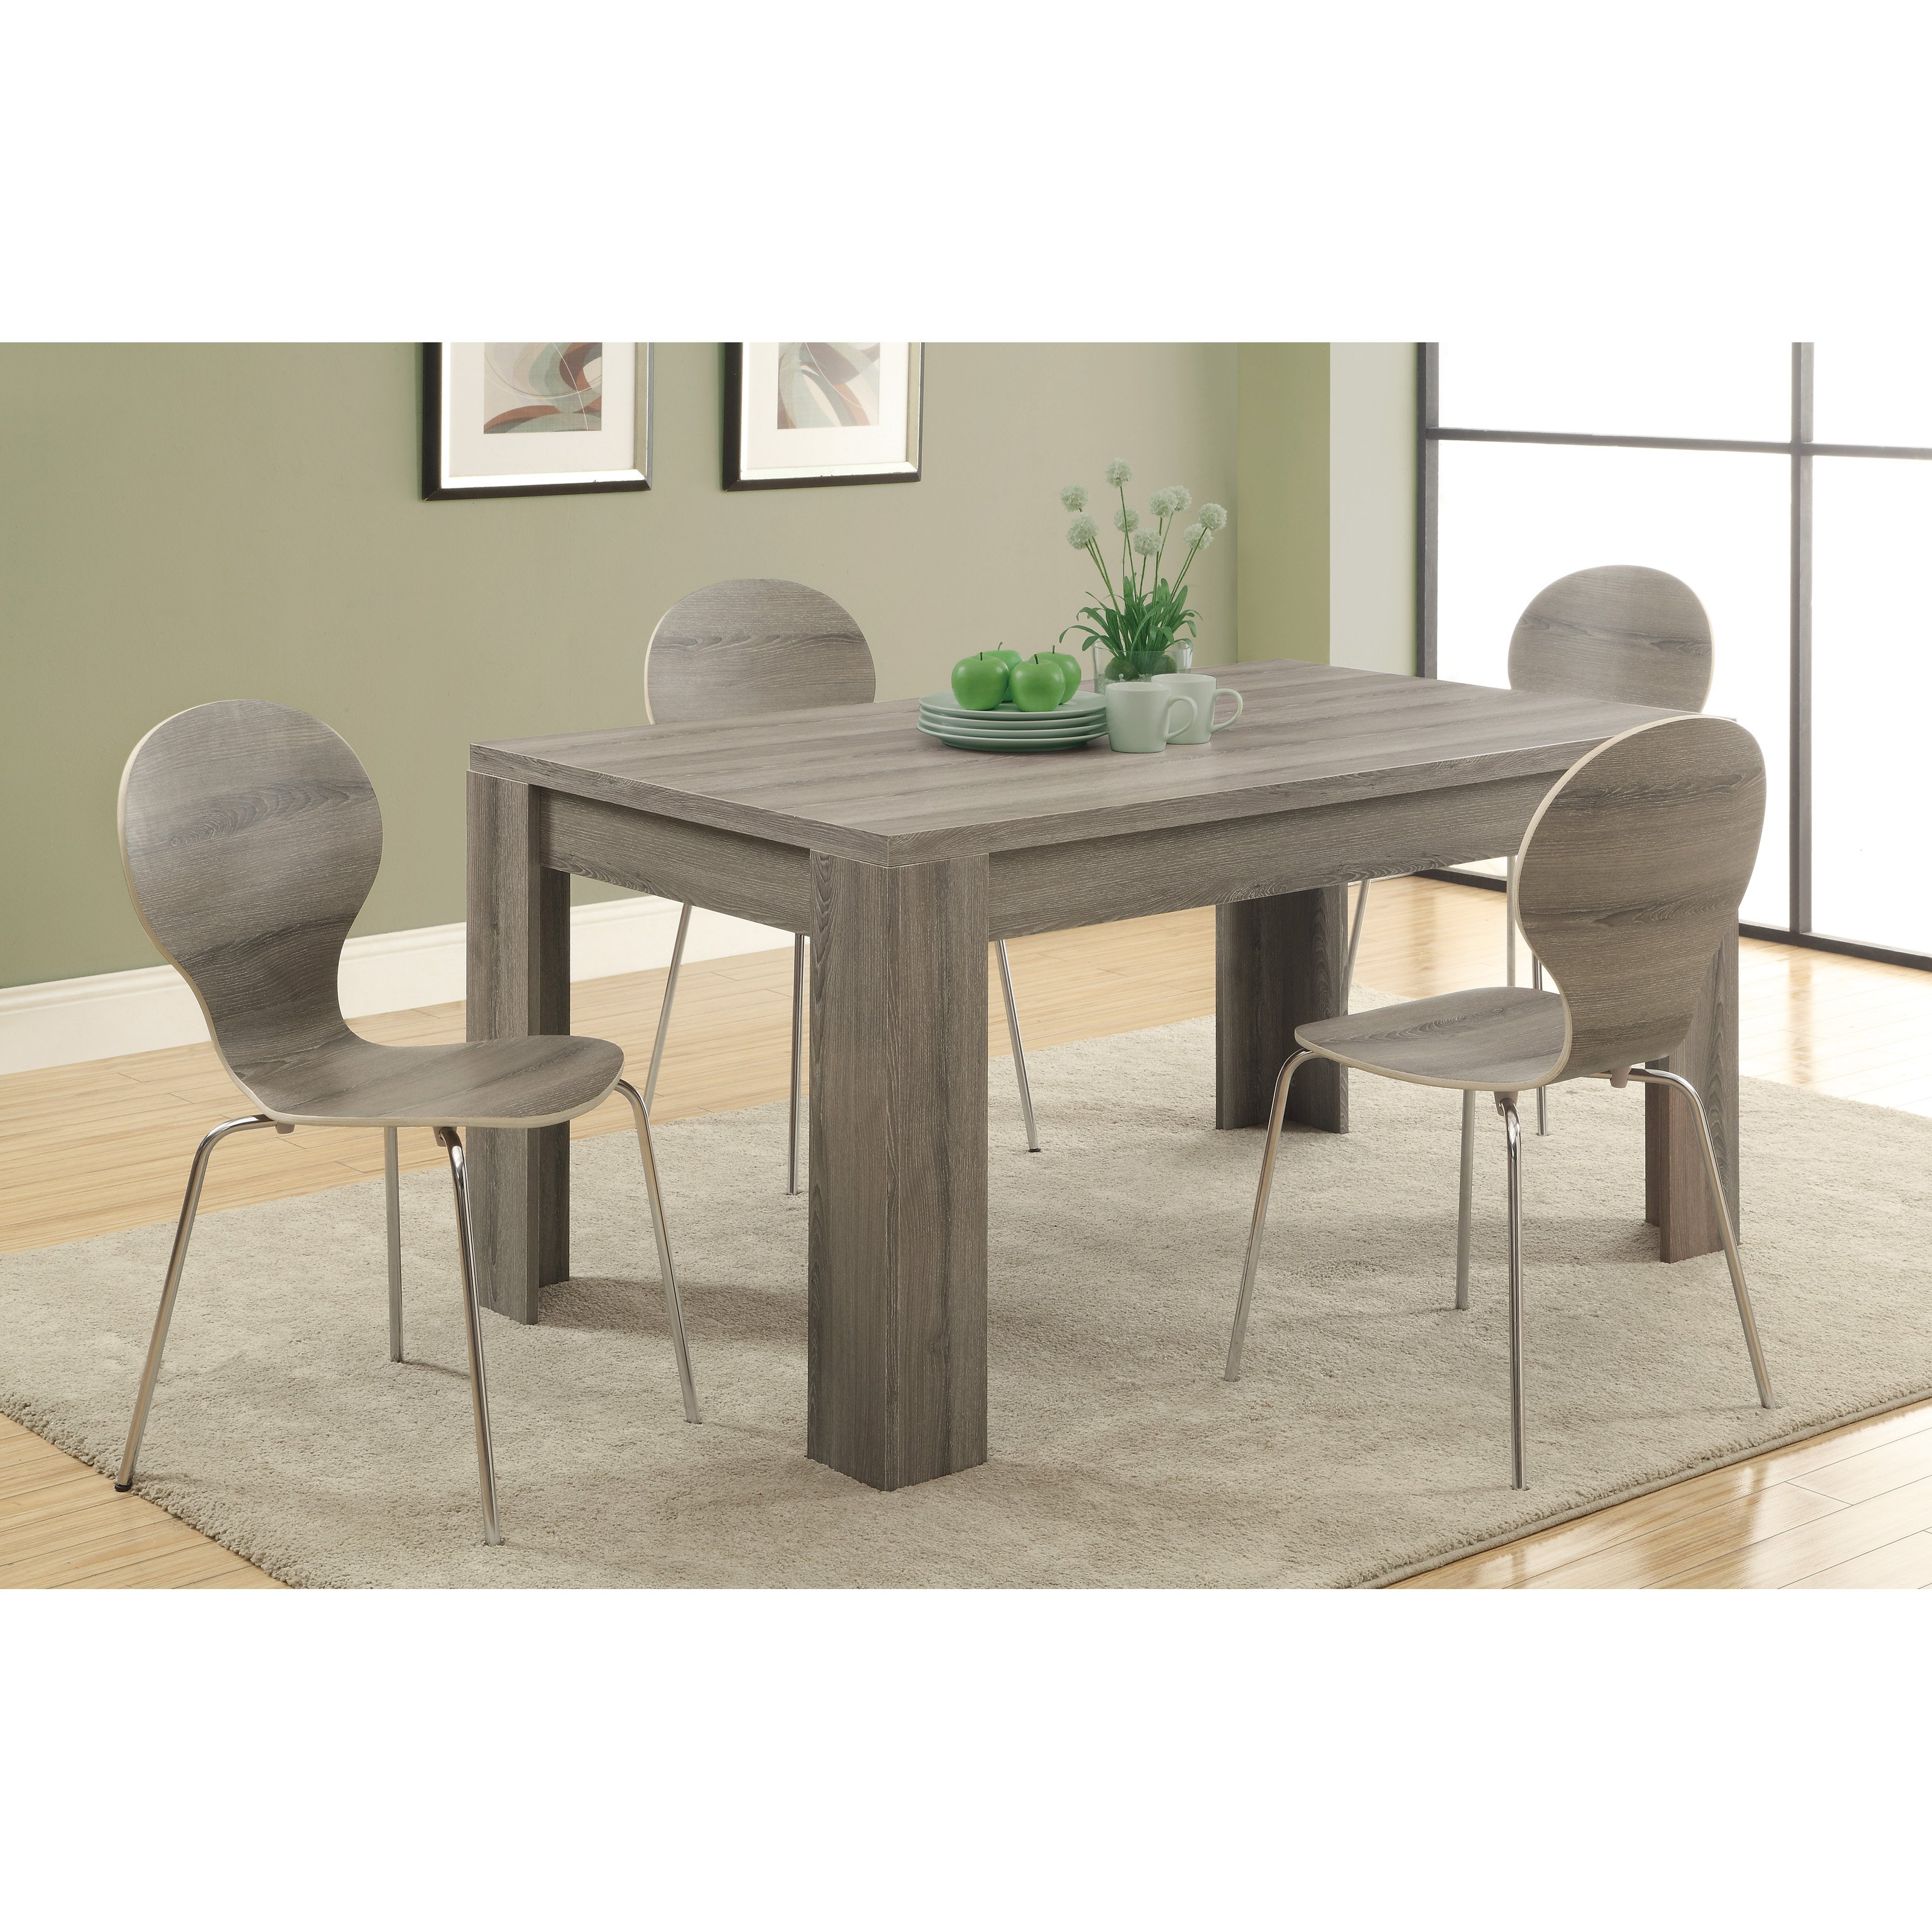 Monarch Greyson Reclaimed Wood Rectangle Dining Table 5 Piece Set